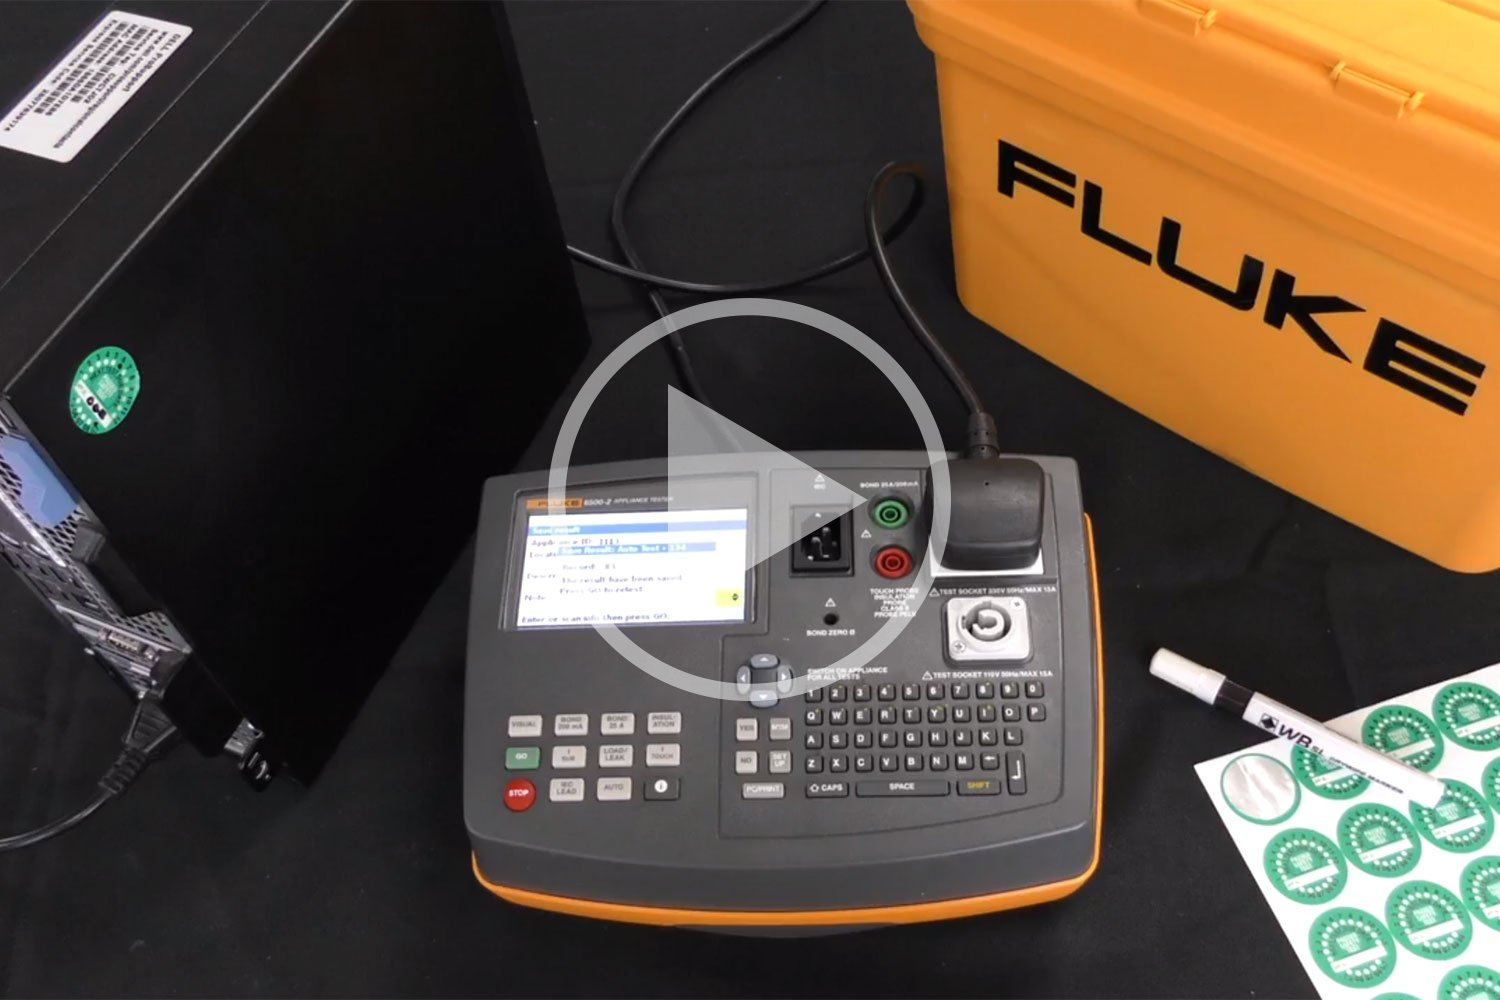 IT-apparatuur testen - Fluke 6500-2 PAT-tester: